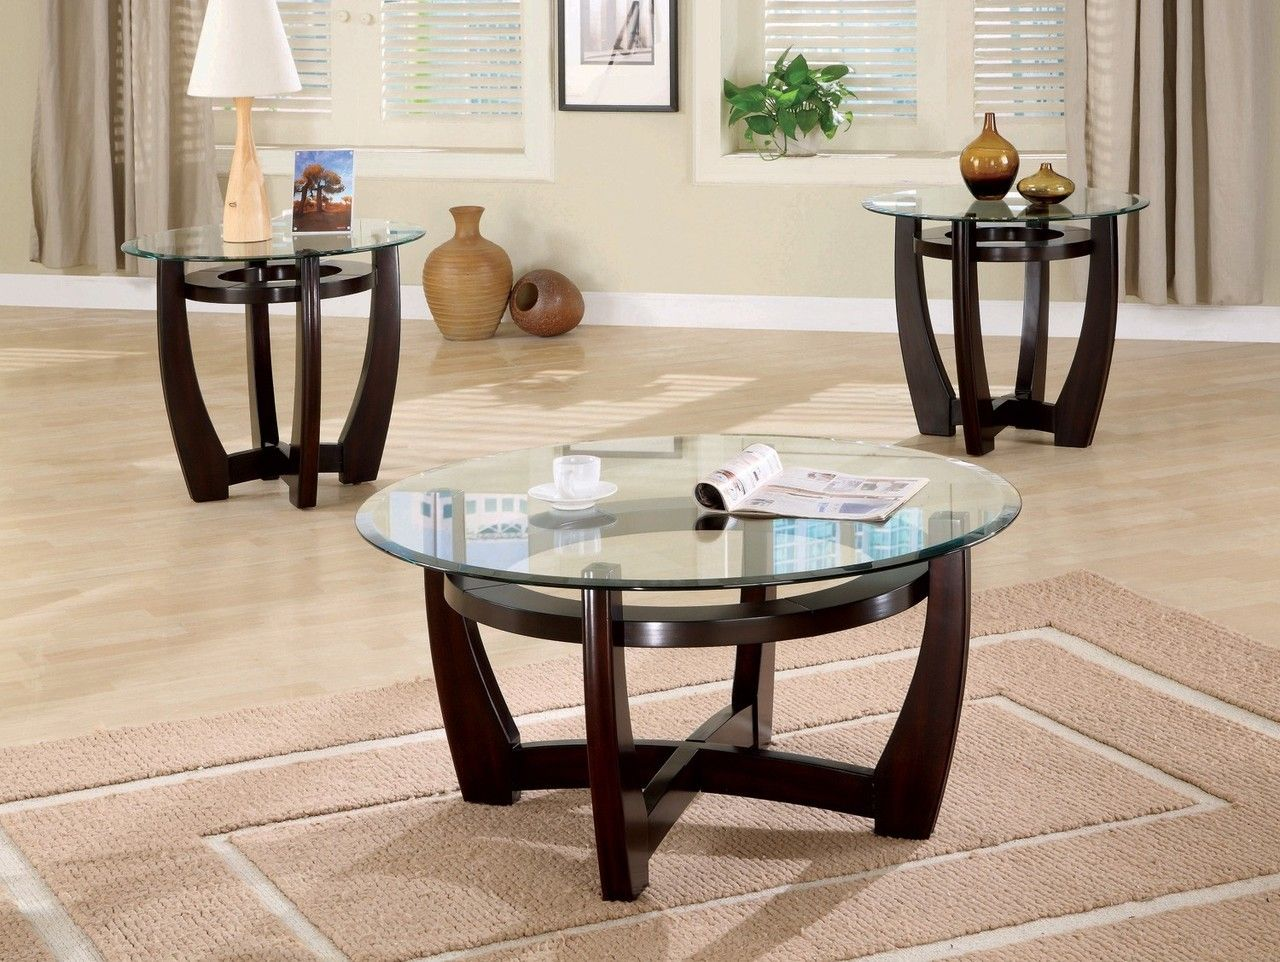 Coaster 3 Pc Alexis Coffee Table End Table Set Coffee Table End Table Set Round Glass Coffee Table Round Coffee Table Sets